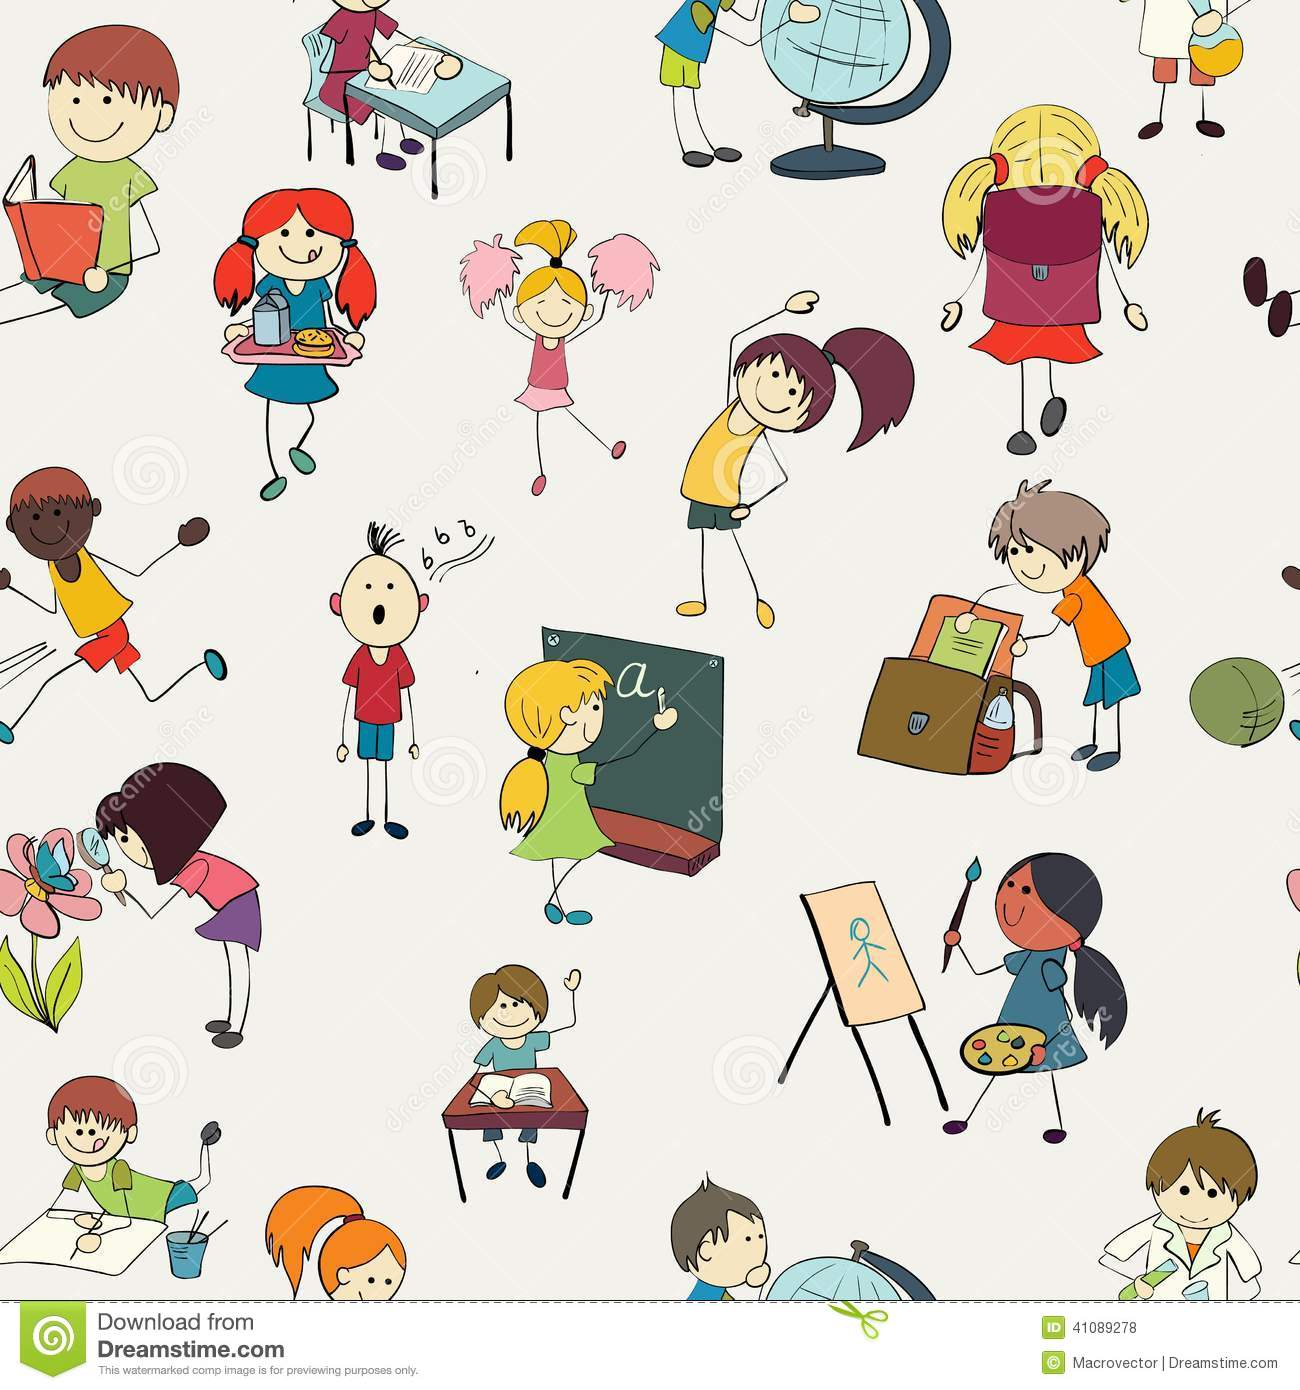 free clipart for school activities intended for your.